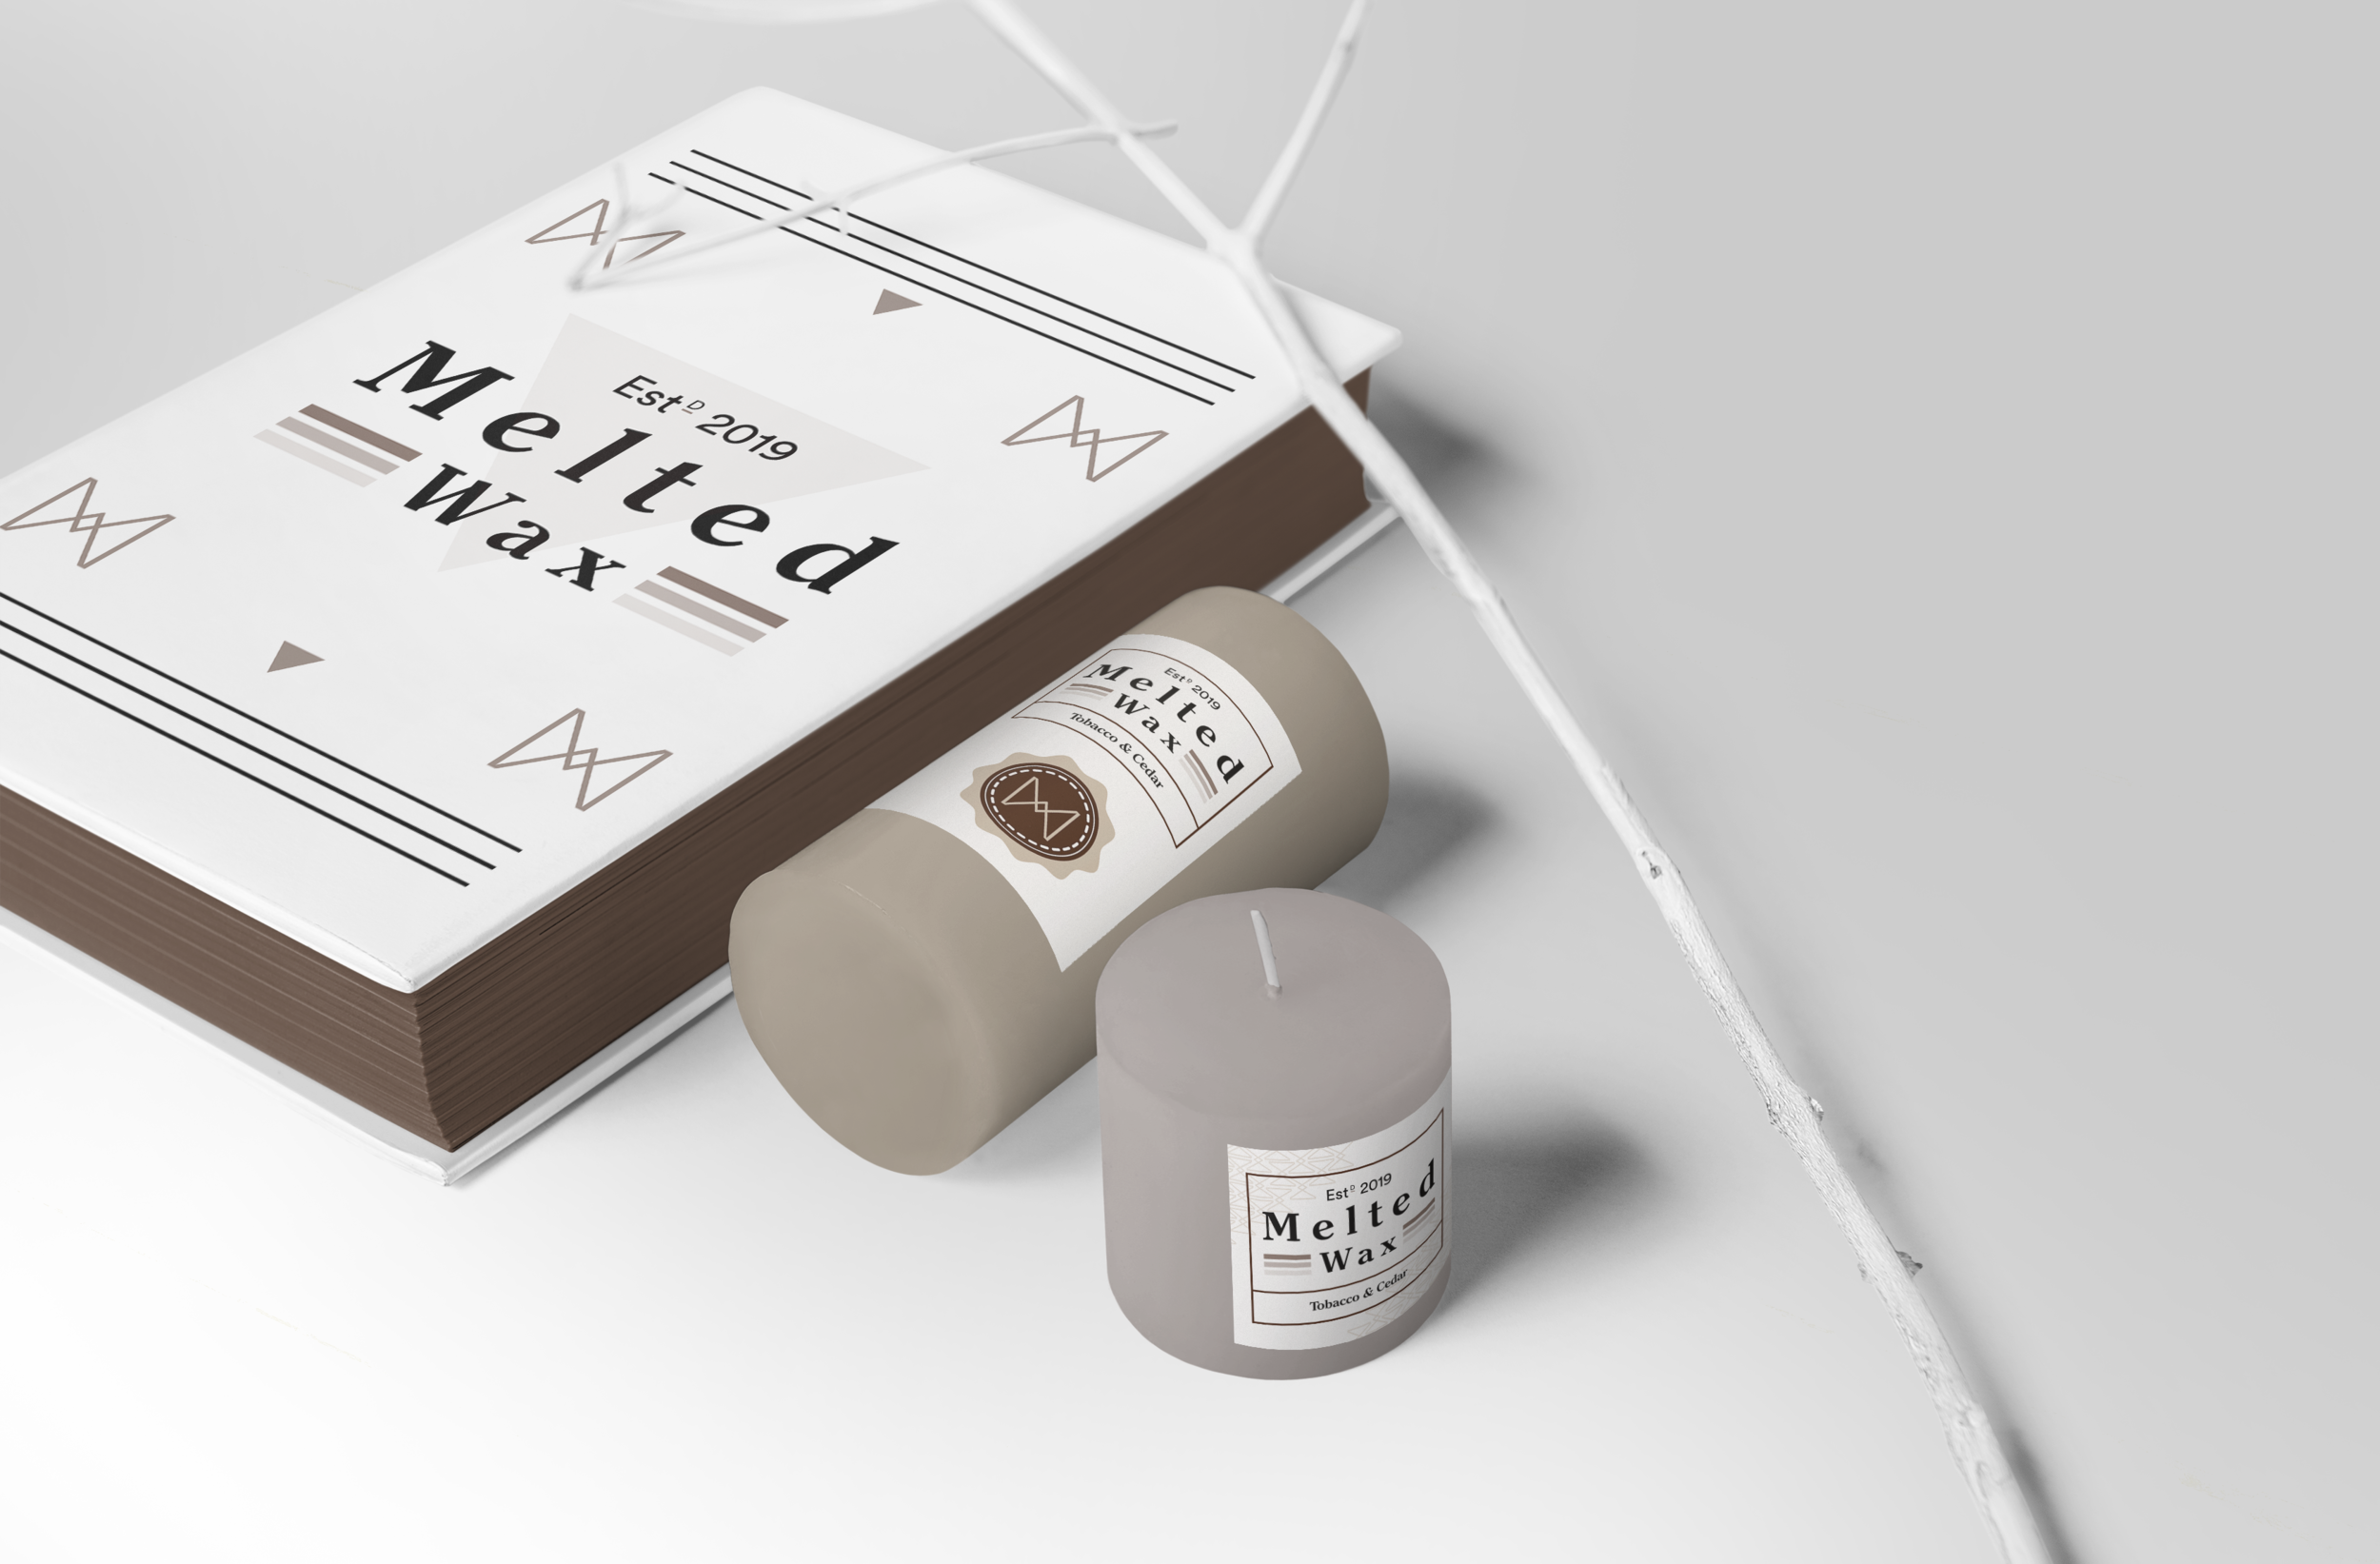 Melted Wax – Brand Identity/Packaging